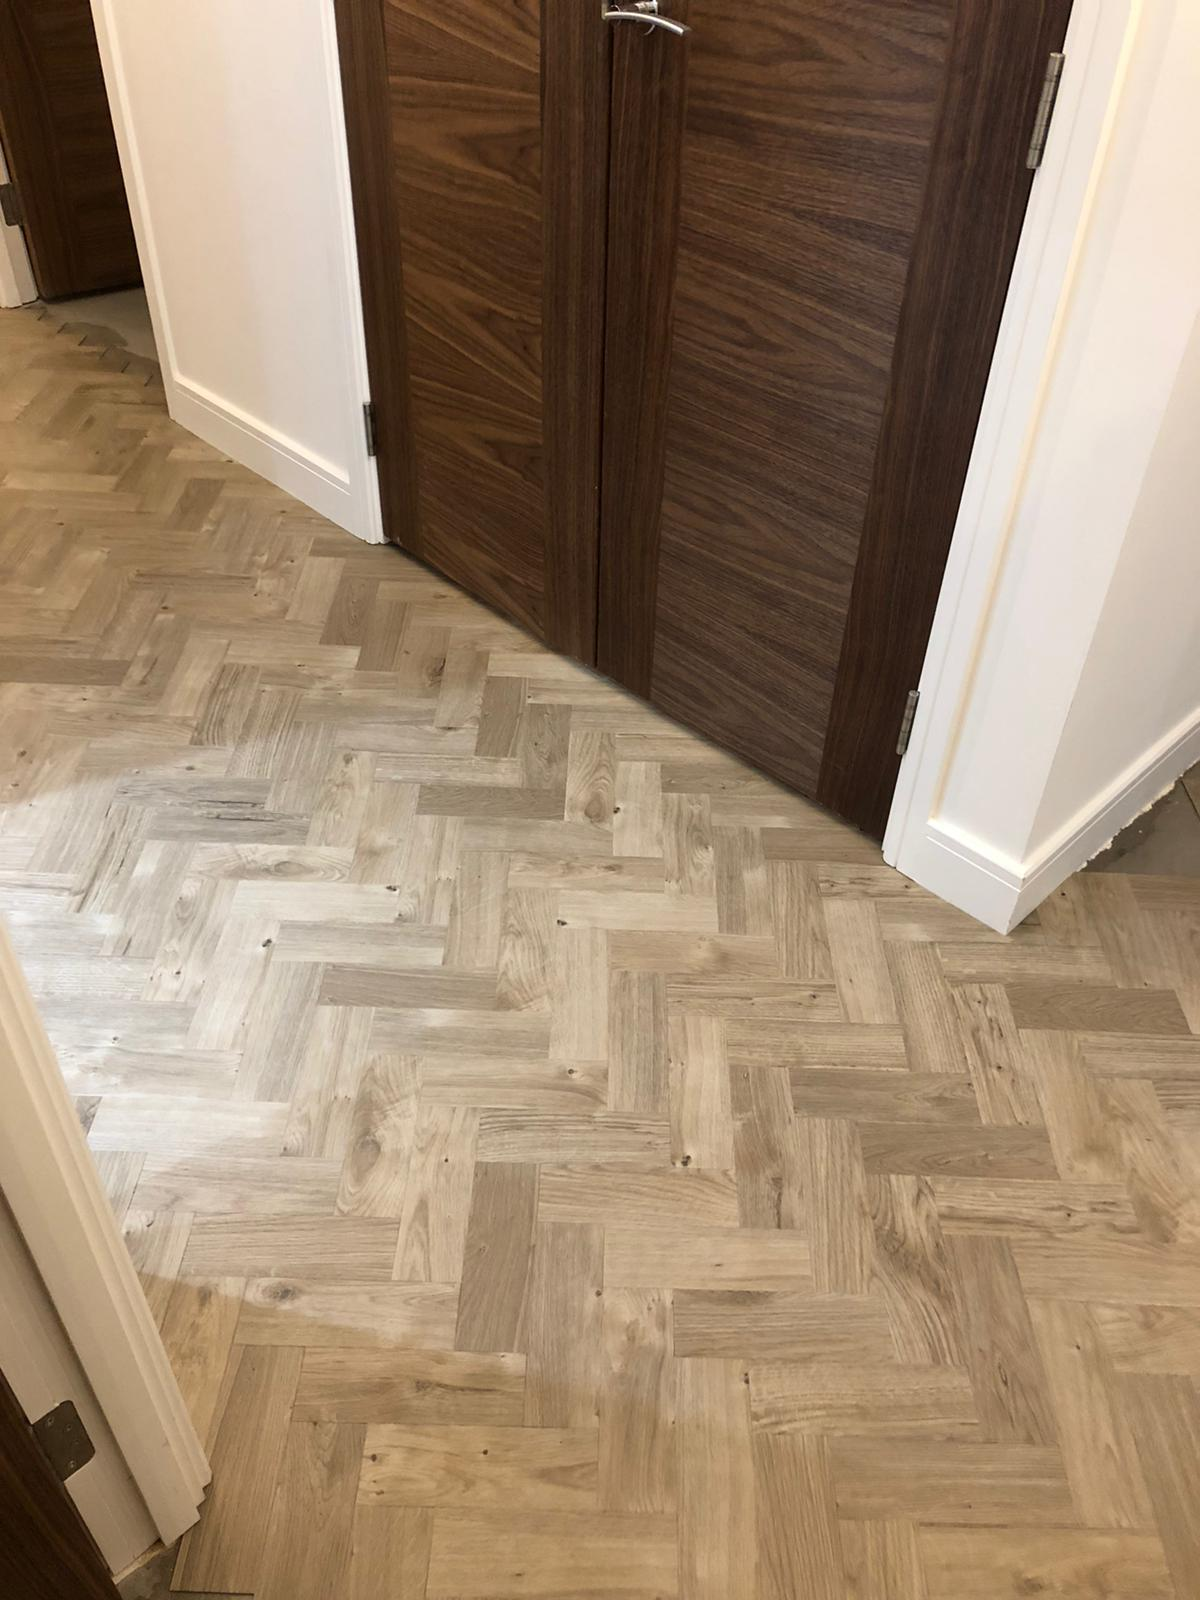 To supply & install Amtico Spacia Sun Bleached Oak luxury vinyl flooring in Kilburn 6